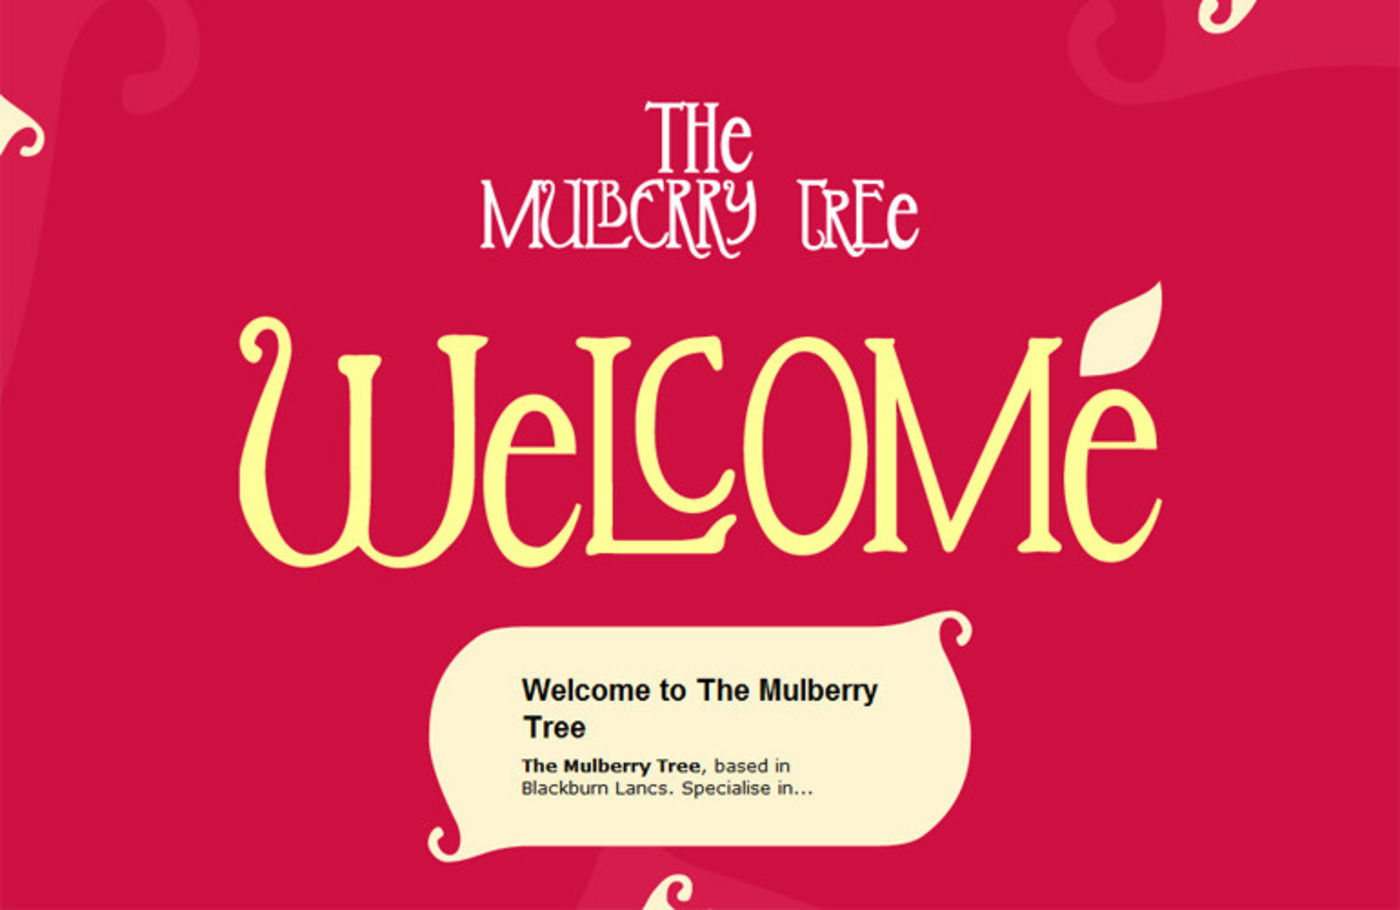 The Mulberry Tree Welcome